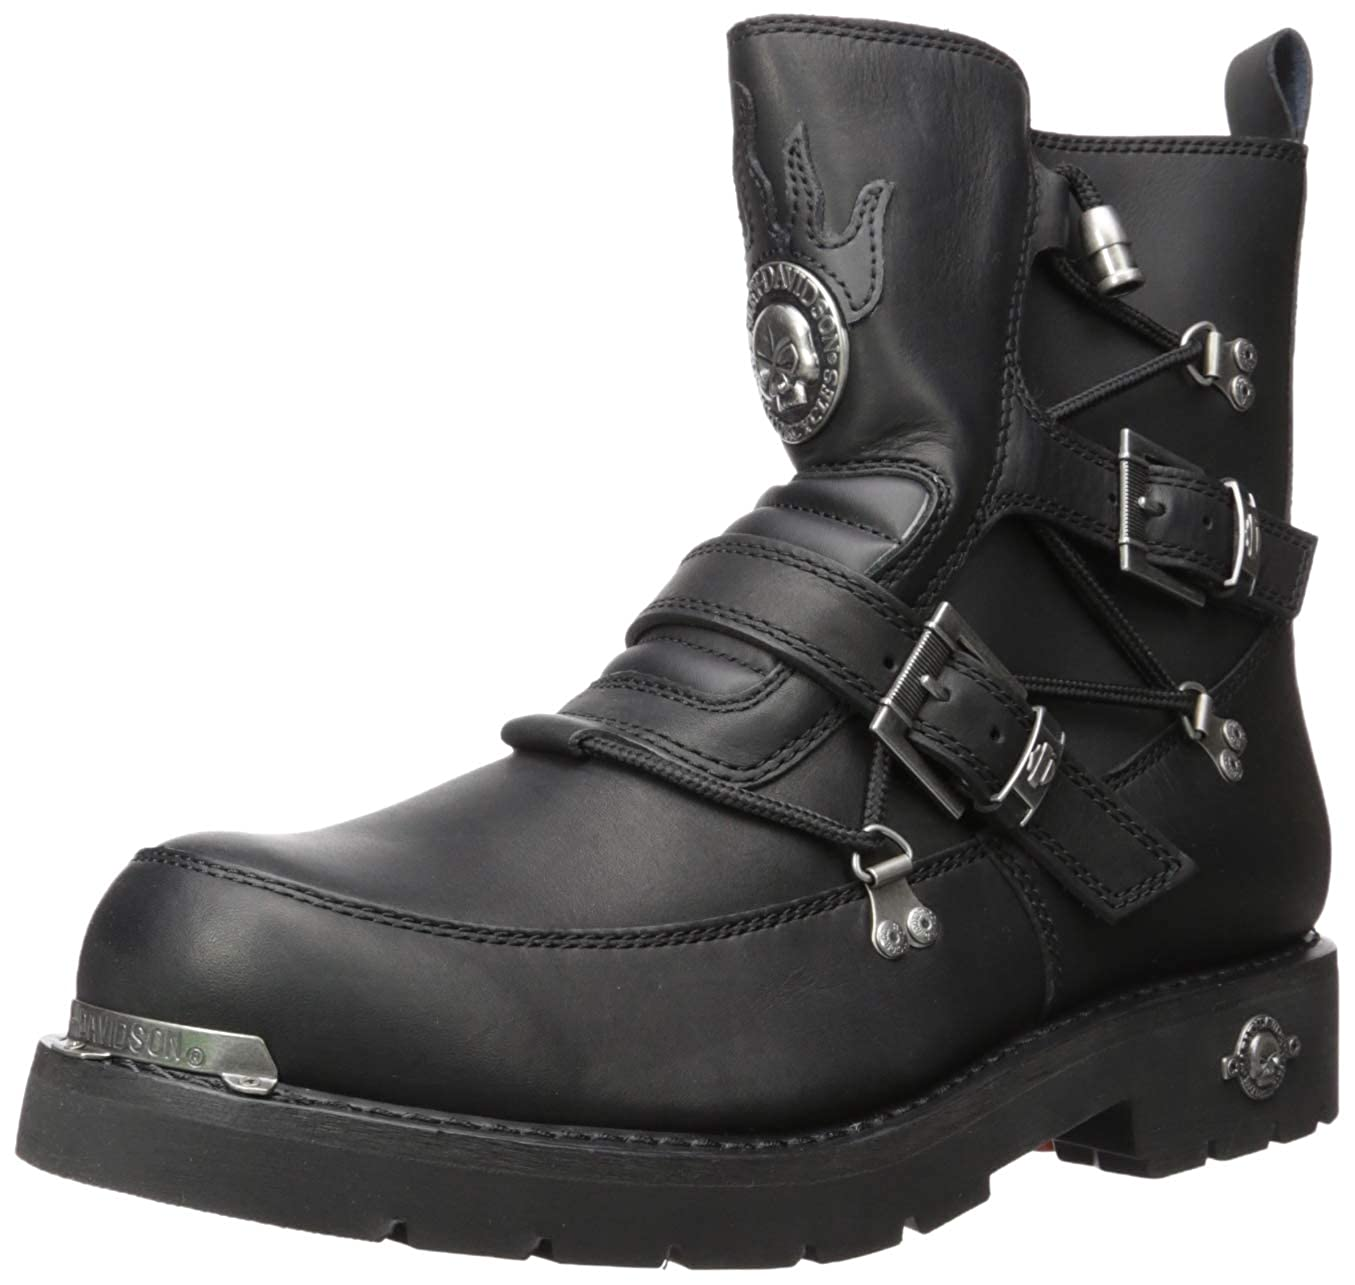 Mens Retro Shoes | Vintage Shoes & Boots Harley-Davidson Mens Distortion Boot $117.18 AT vintagedancer.com